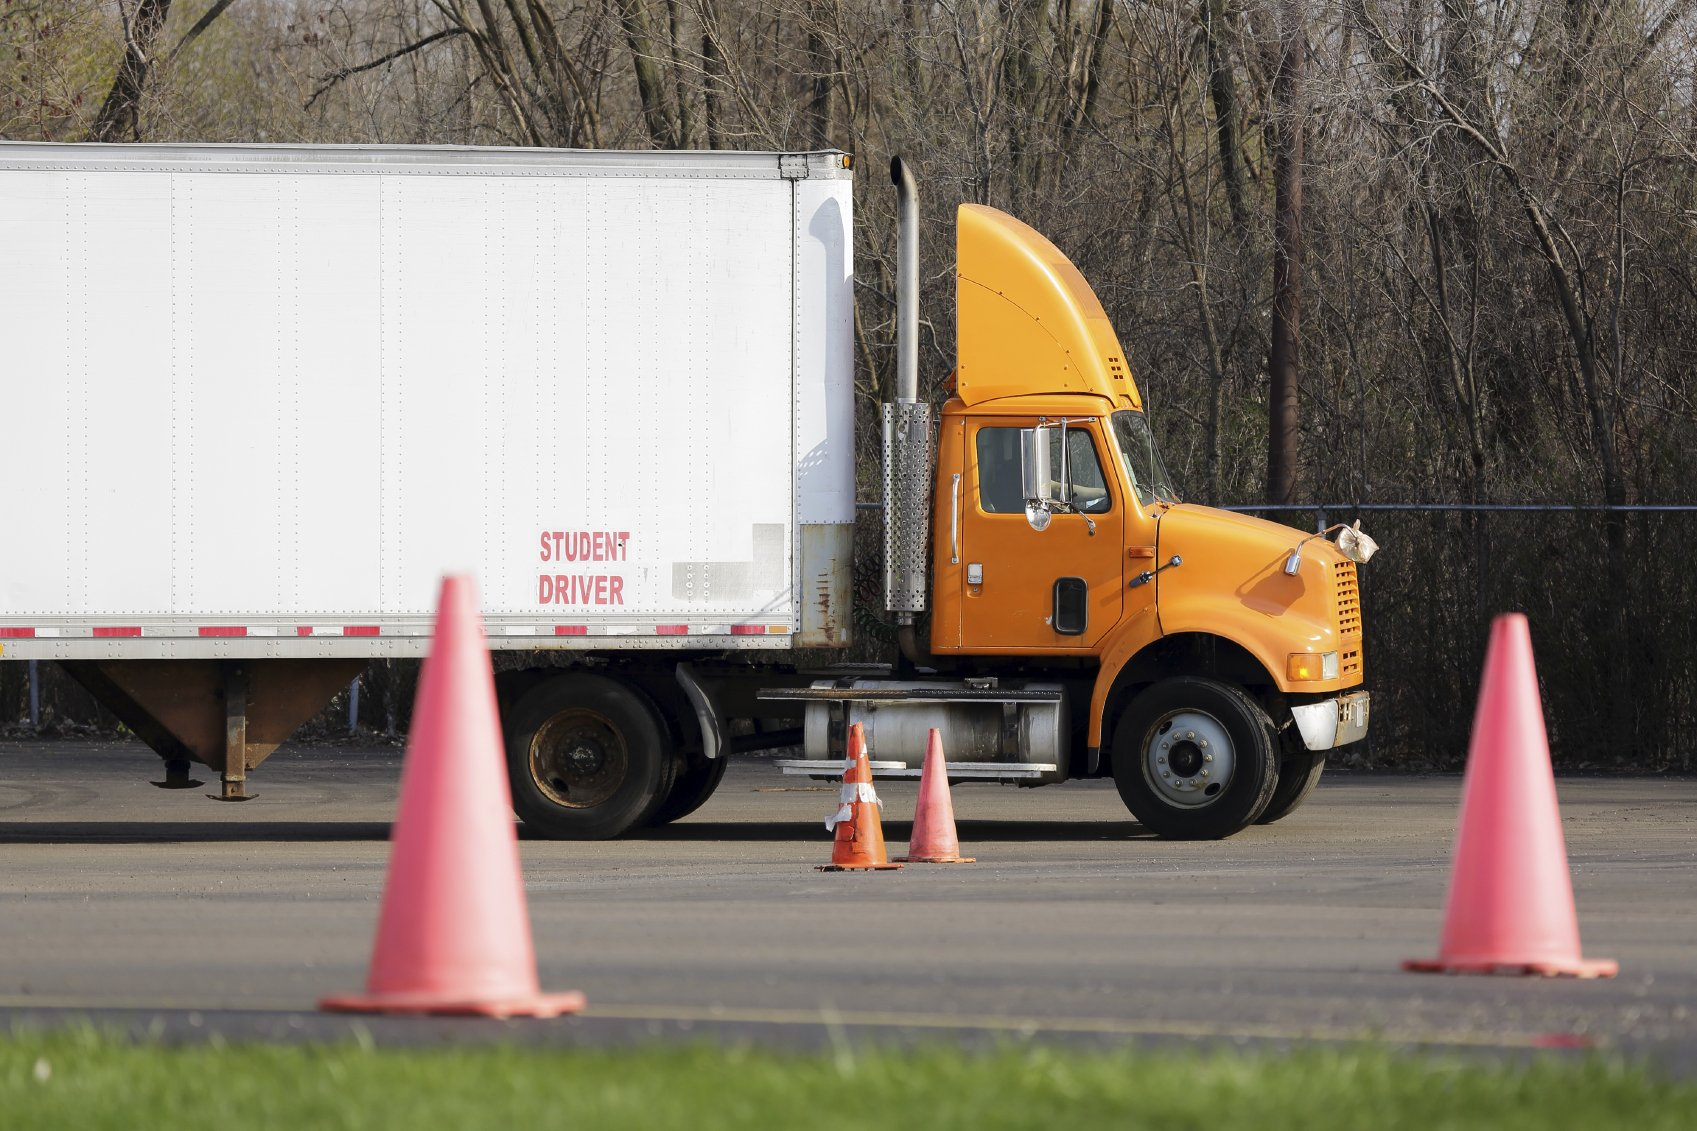 Third-Party CDL Testing From Trainers OK, Says FMCSA